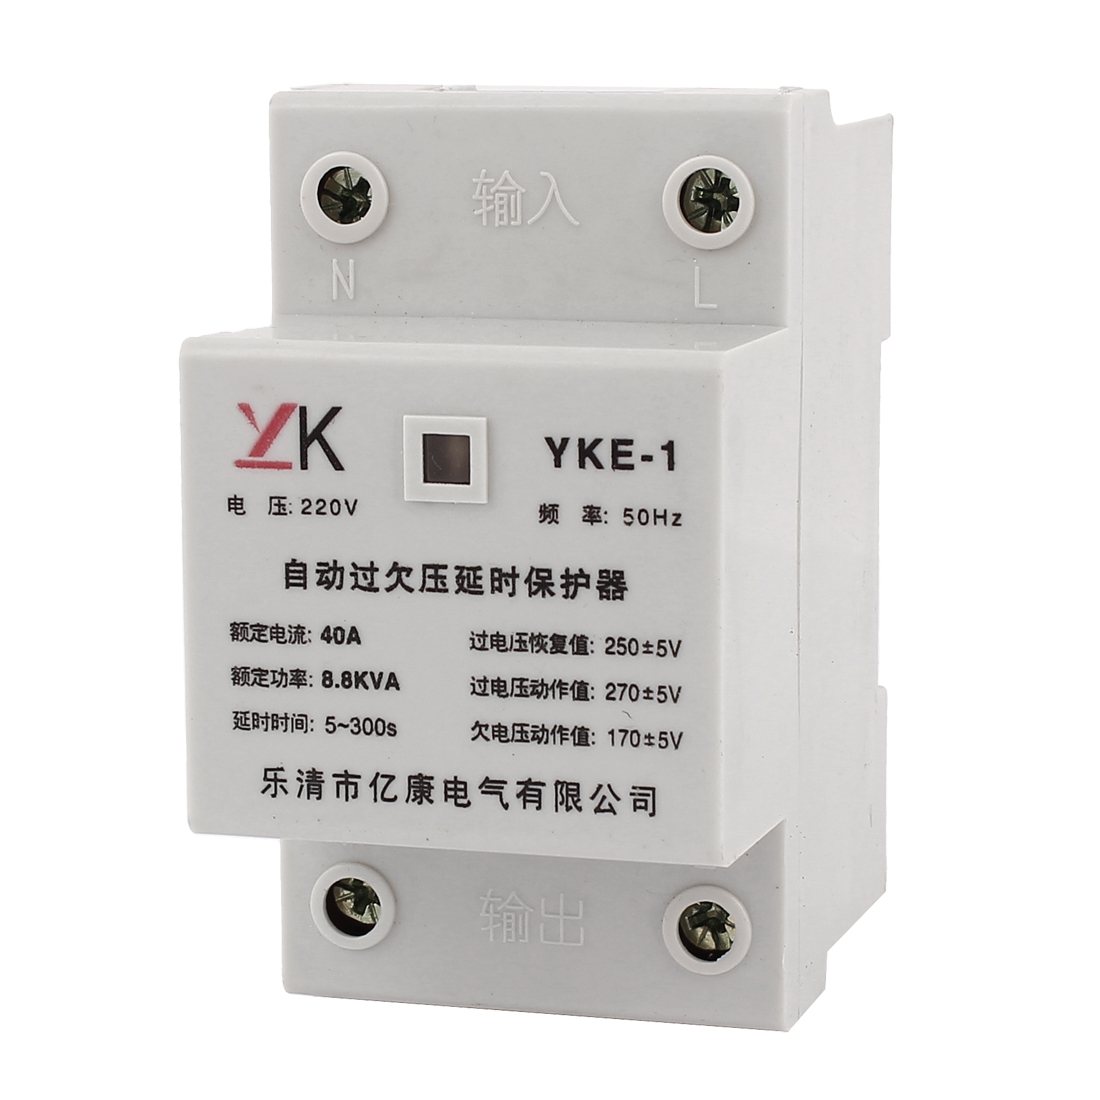 AC 220V 40A 50Hz 5-300s Automatic Over/Under Voltage Time Delay Protector